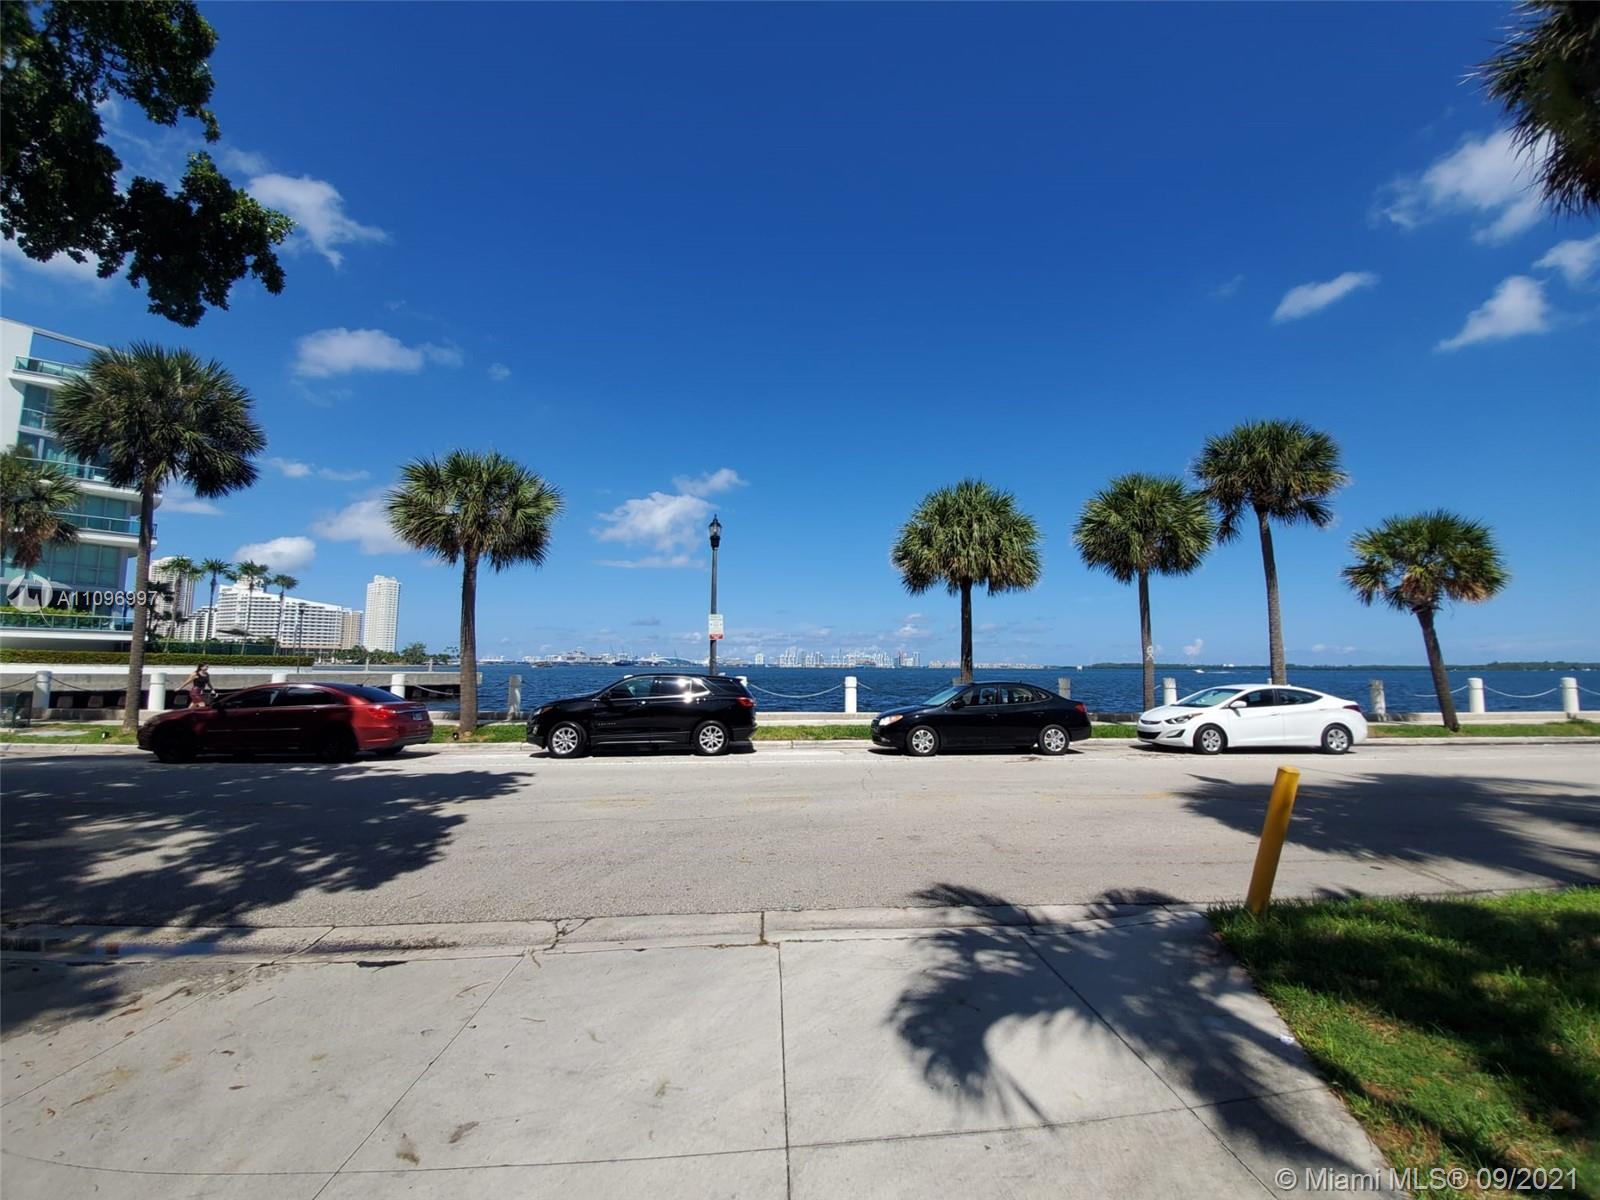 BEAUTIFUL AND VERY WELL MAINTAINED APARTMENT ON THE GROUND FLOOR, BRIGHT AND LARGE SPACES. WASHER DRYER IN UNIT, EASY ACCESS TO AMENITIES AND PARKING, NICE BALCONY. THE BUILDING IS IN FRONT OF THE BAY, AND LOCATED IN THE HEART OF THE MIAMI FINANCIAL DISTRIC  BEAUTIFUL HEATED COMMUNITY POOL W/BBQ/GREEN AREA. GYM. CONCIERGE.